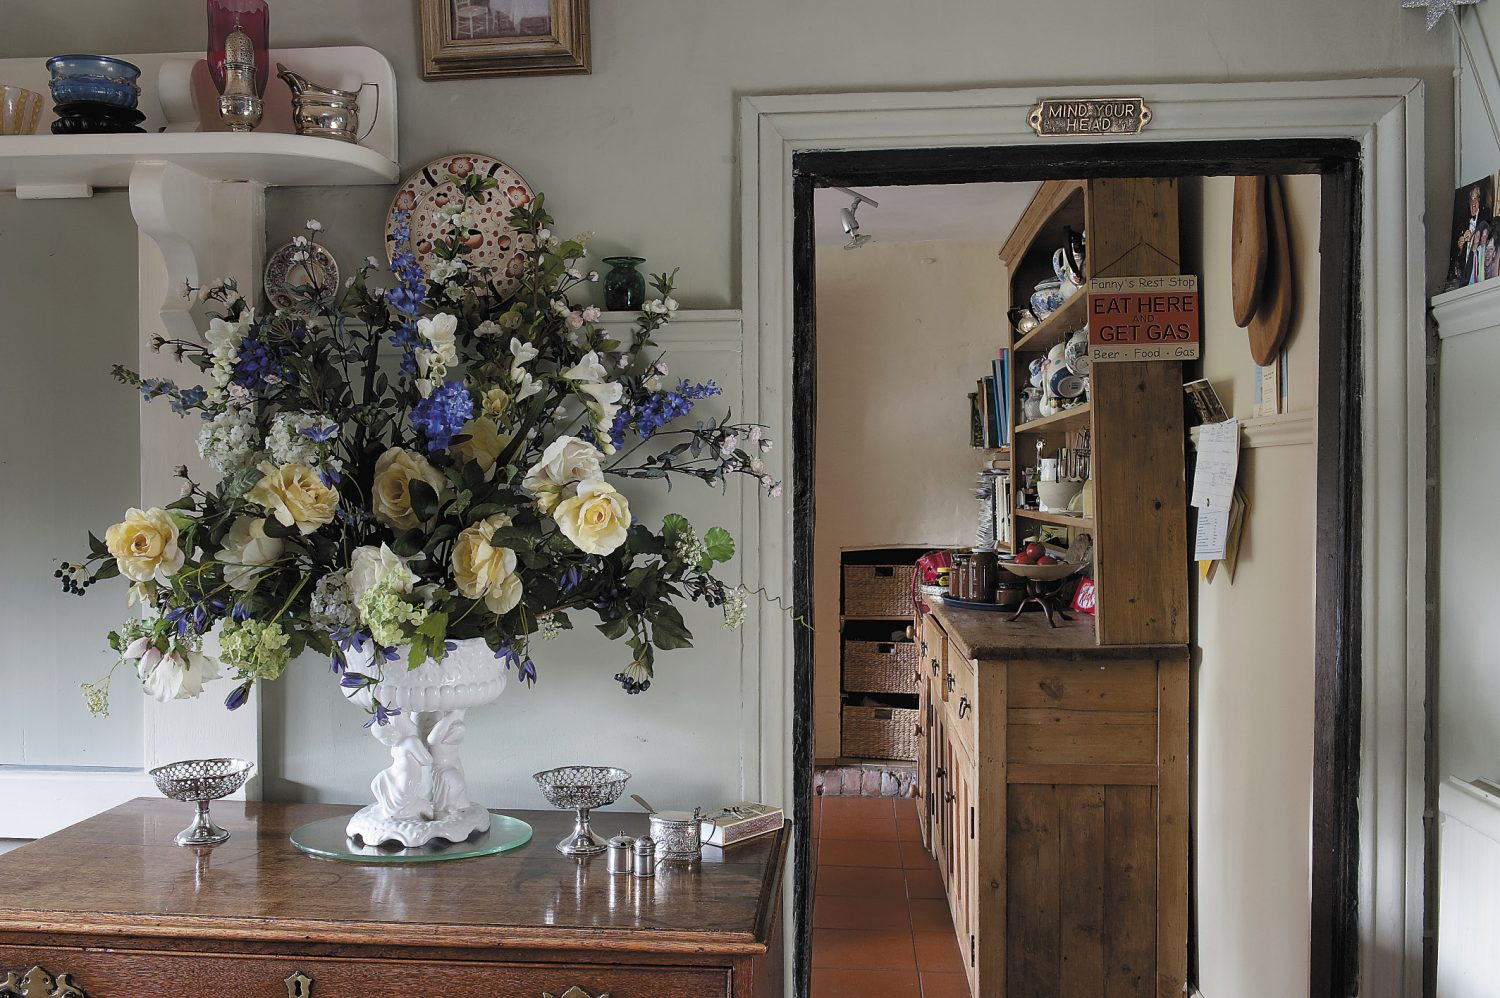 leading off from the dining room is the kitchen where Fanny prepares home-baked delights